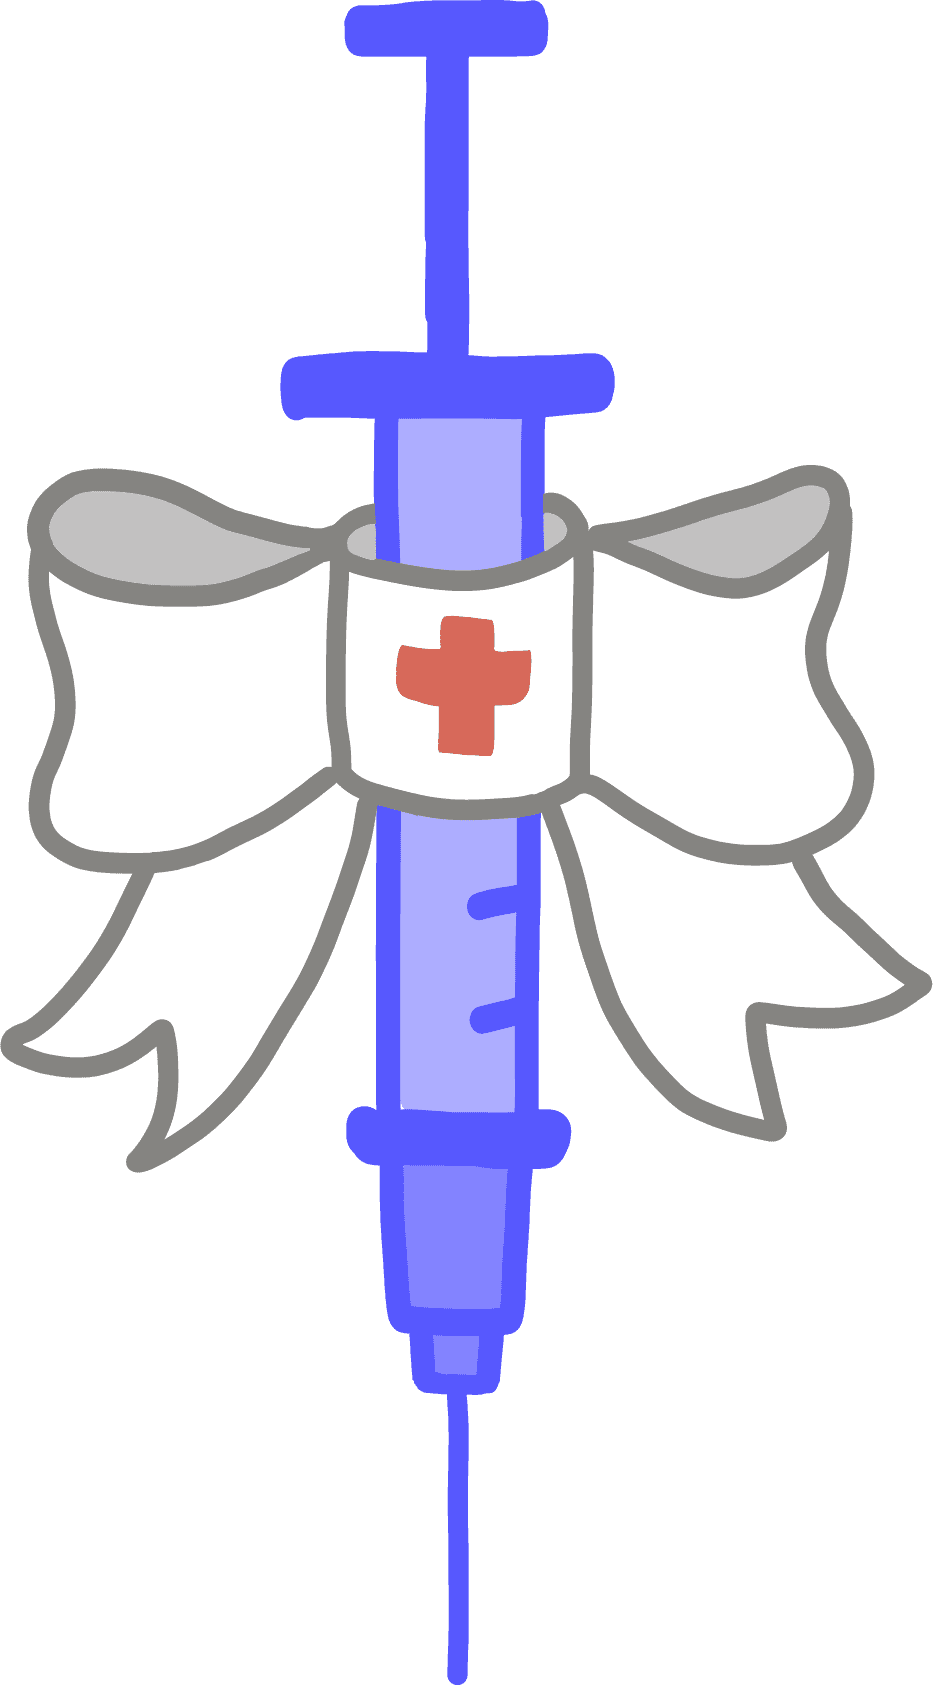 Illustration of a vaccine